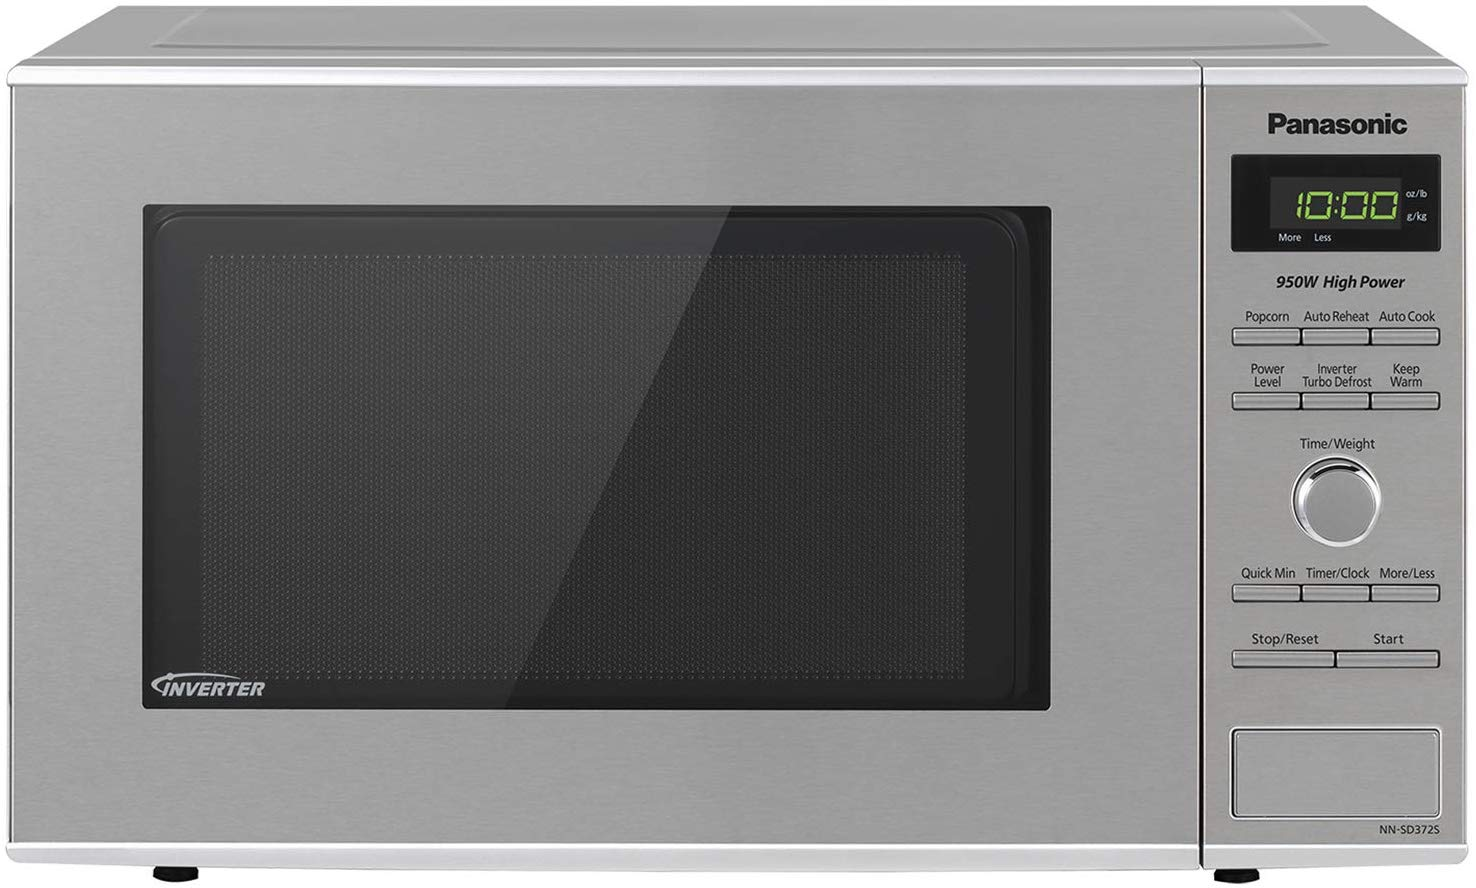 Panasonic NN SD372S Countertop Microwave